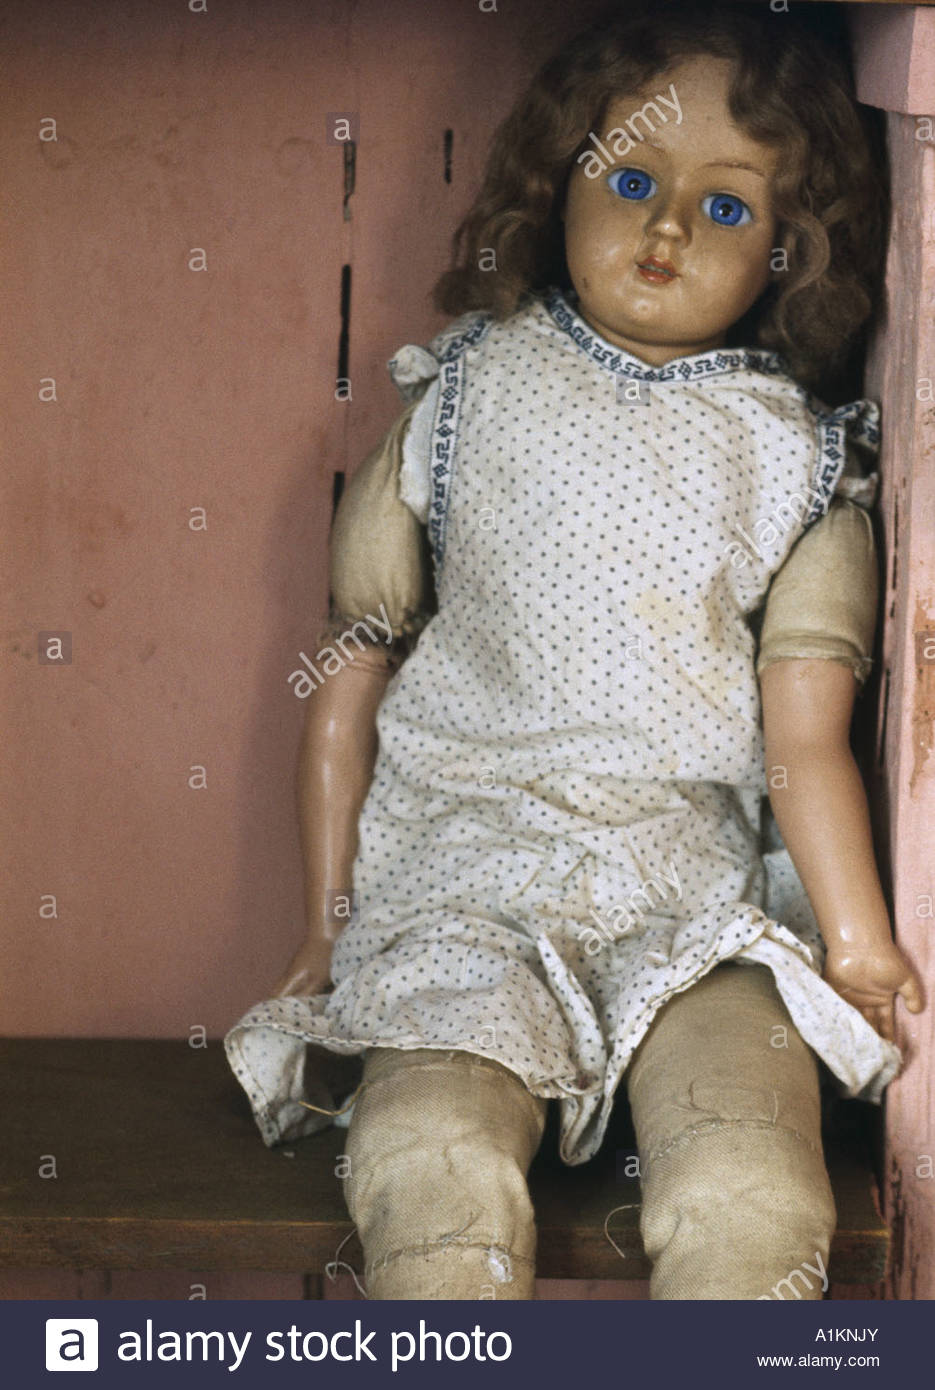 old doll sitting on a shelf stock photo 10283954 alamy